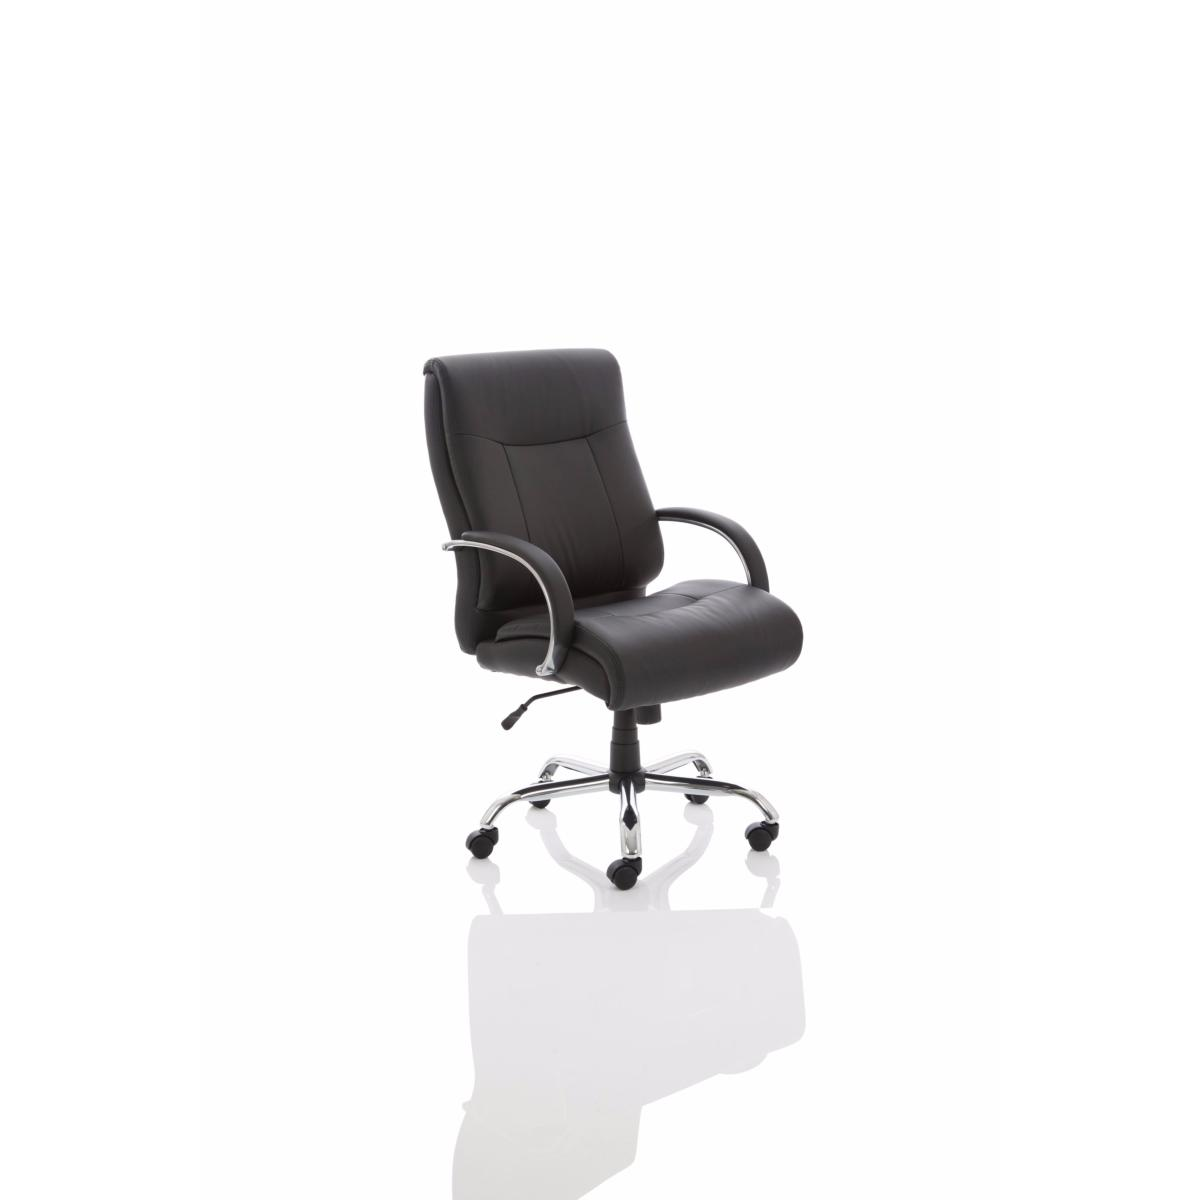 Heavy Duty Office Chair 24 Hour Rated 32 Stone Rated Chair